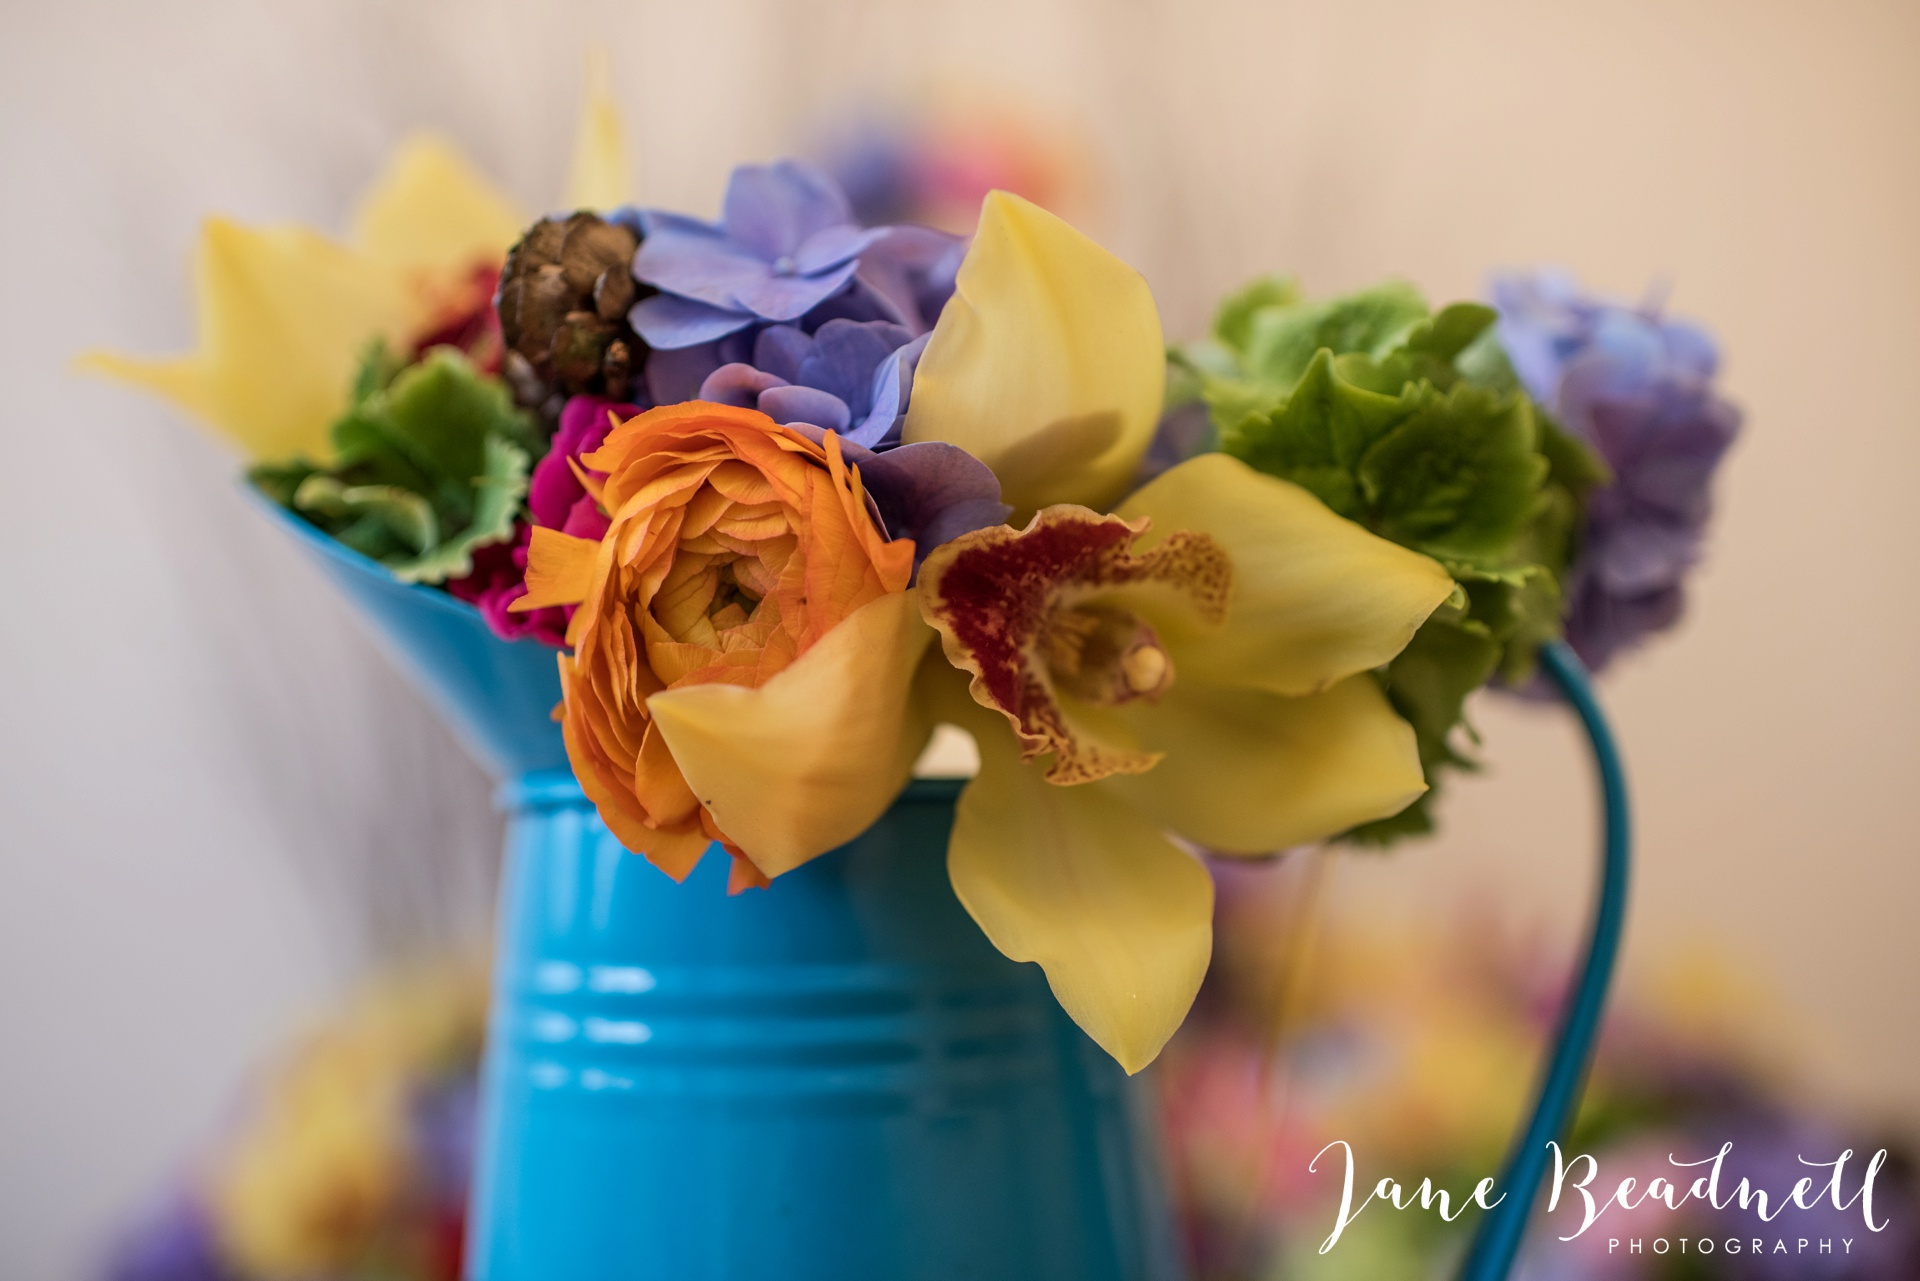 Leafy couture wedding flowers wedding photography by Jane Beadnell photography_0001